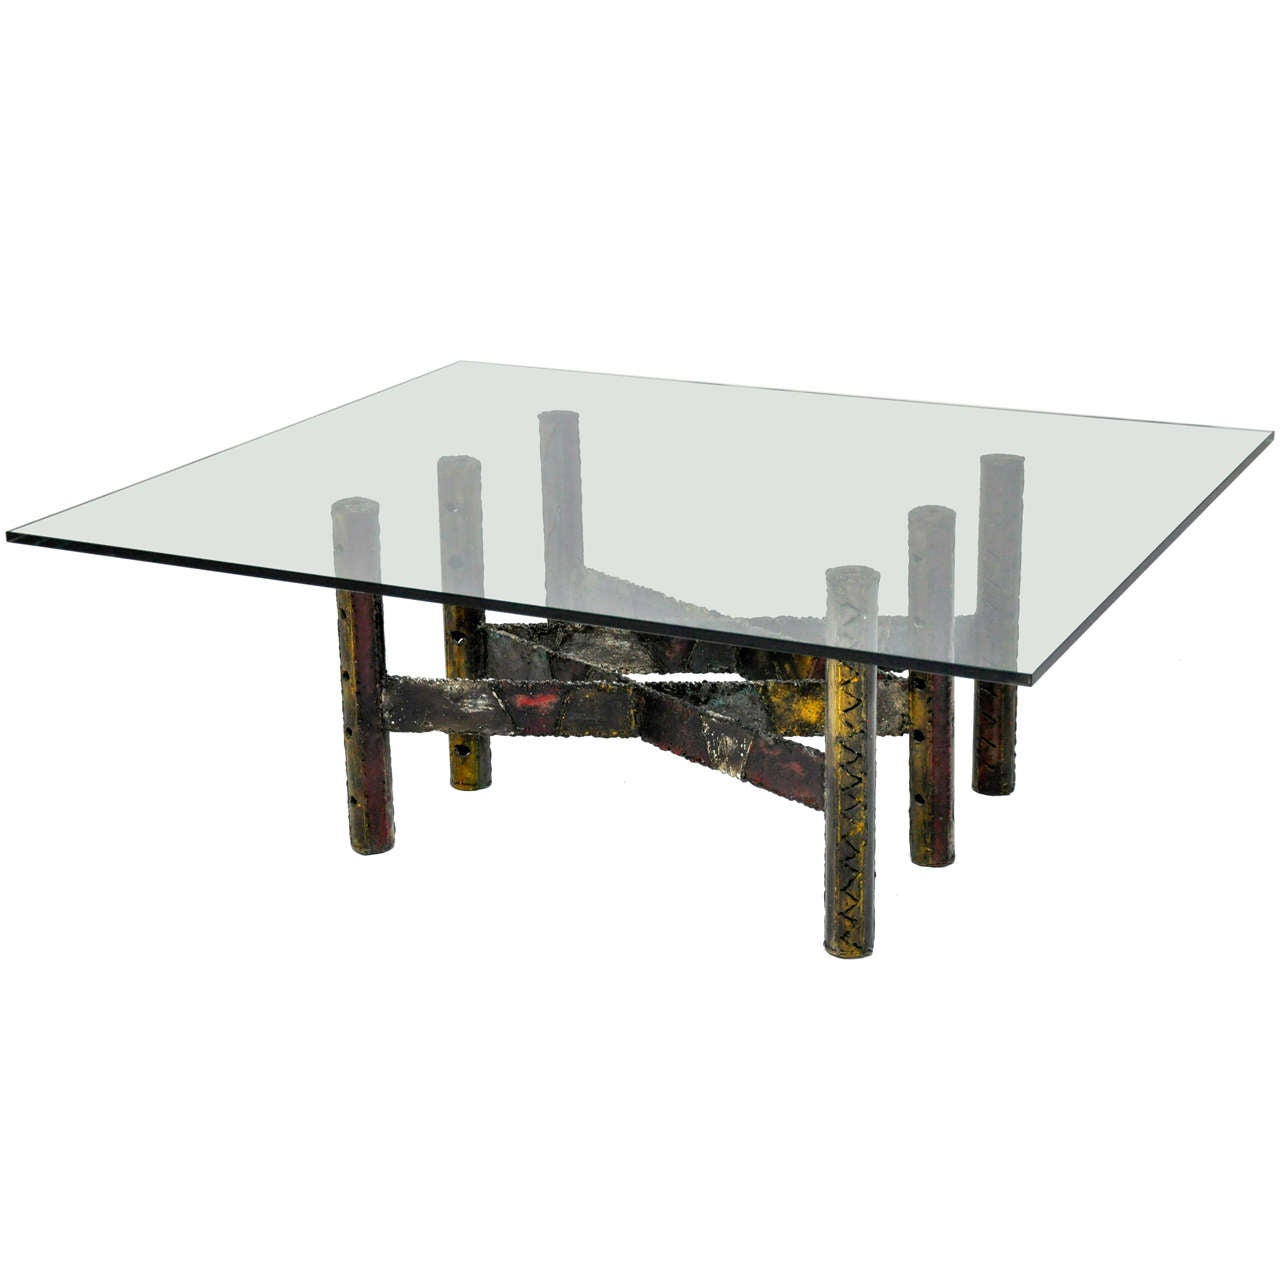 Paul Evans Welded Steel And Glass Coffee Cocktail Table At Stdibs - Welded coffee table